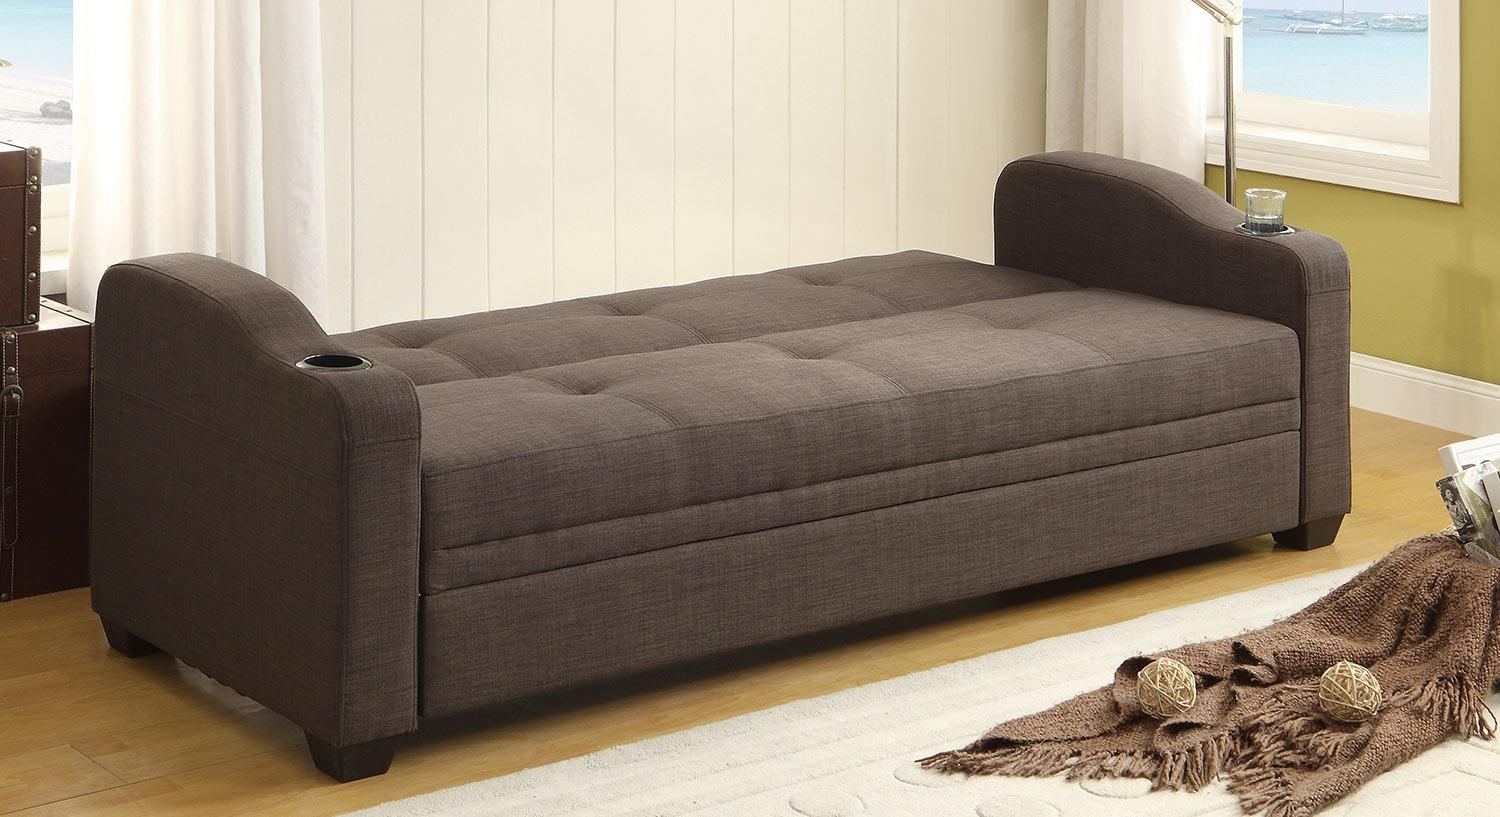 sofa bed lounger leather sofas dfs reviews 20 best beds ideas